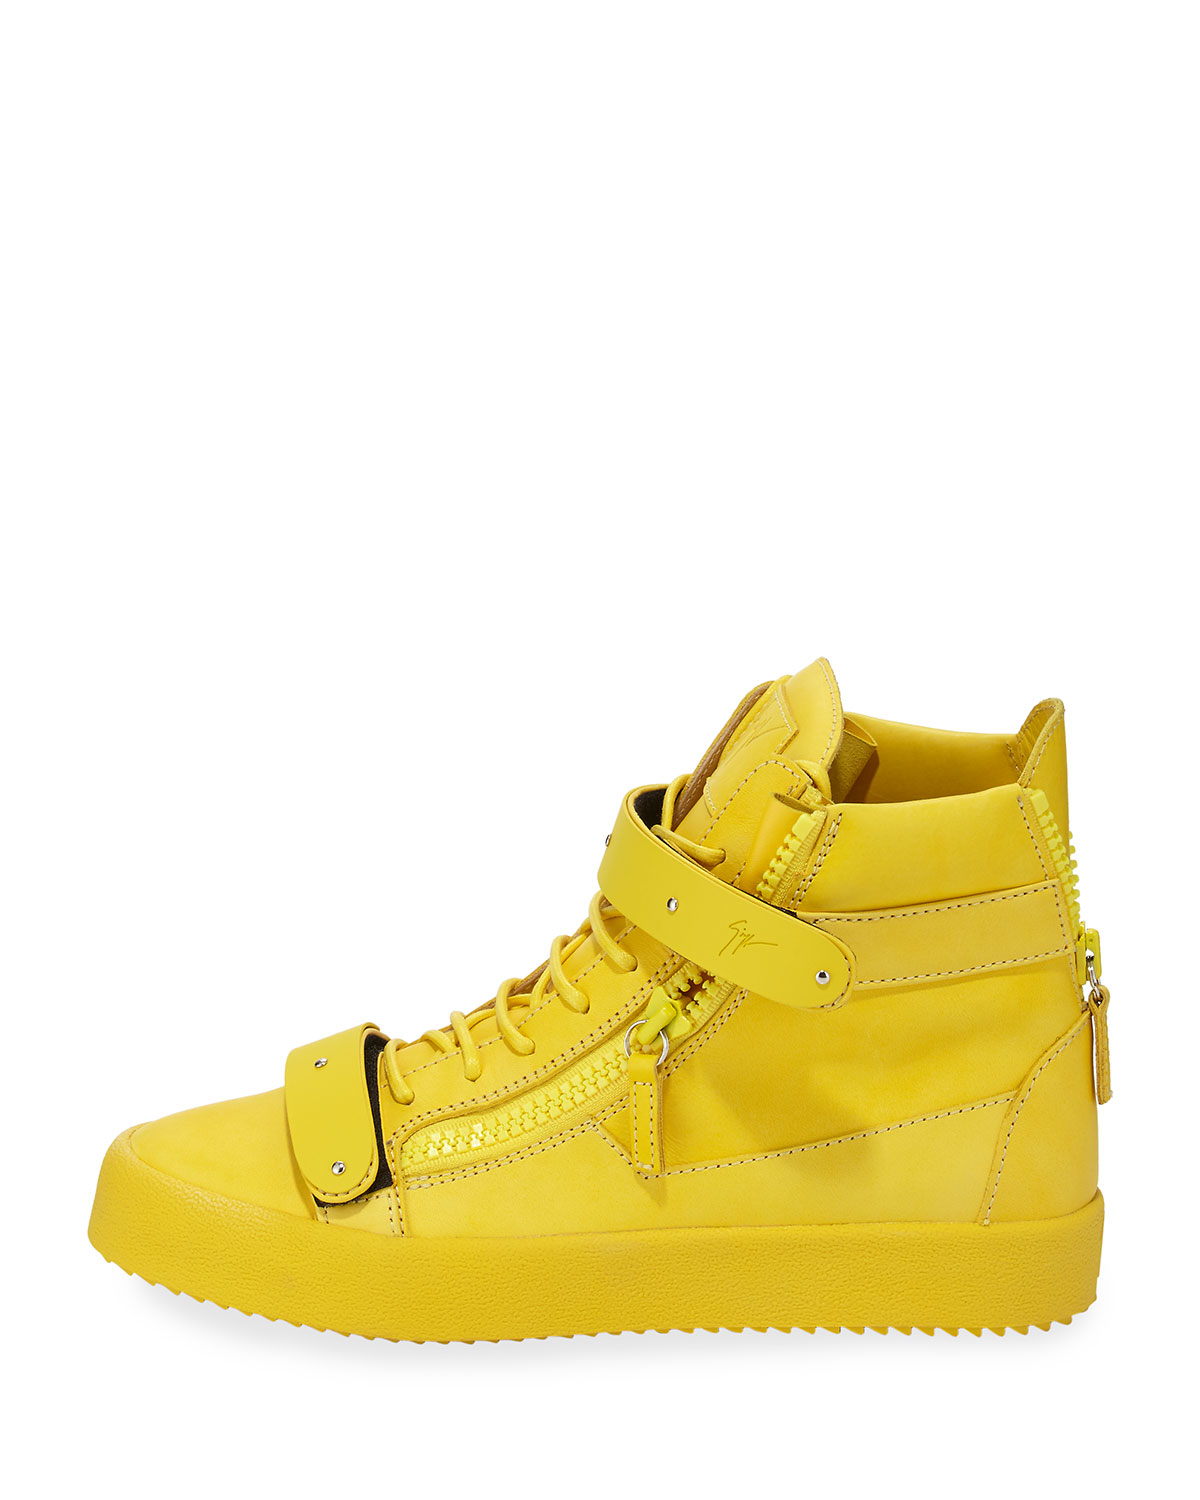 Double-strap Leather High-top Sneaker